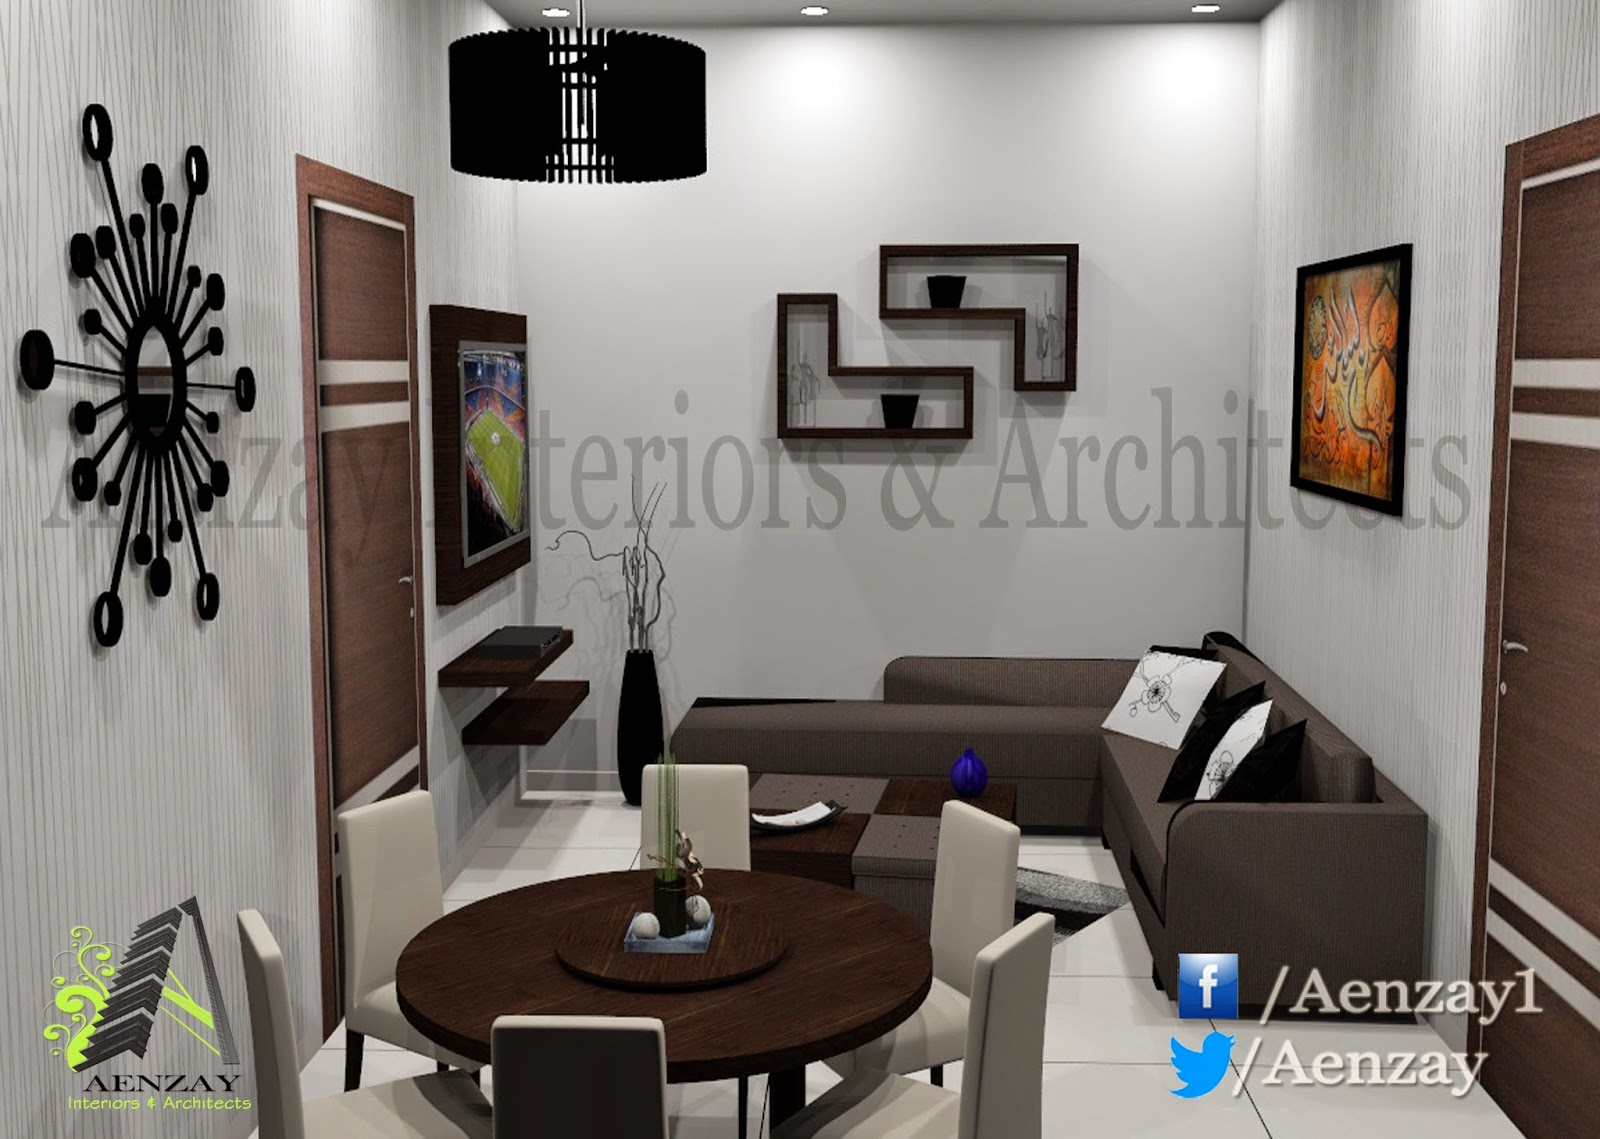 Aenzay Interiors & Architects: Guest House Design